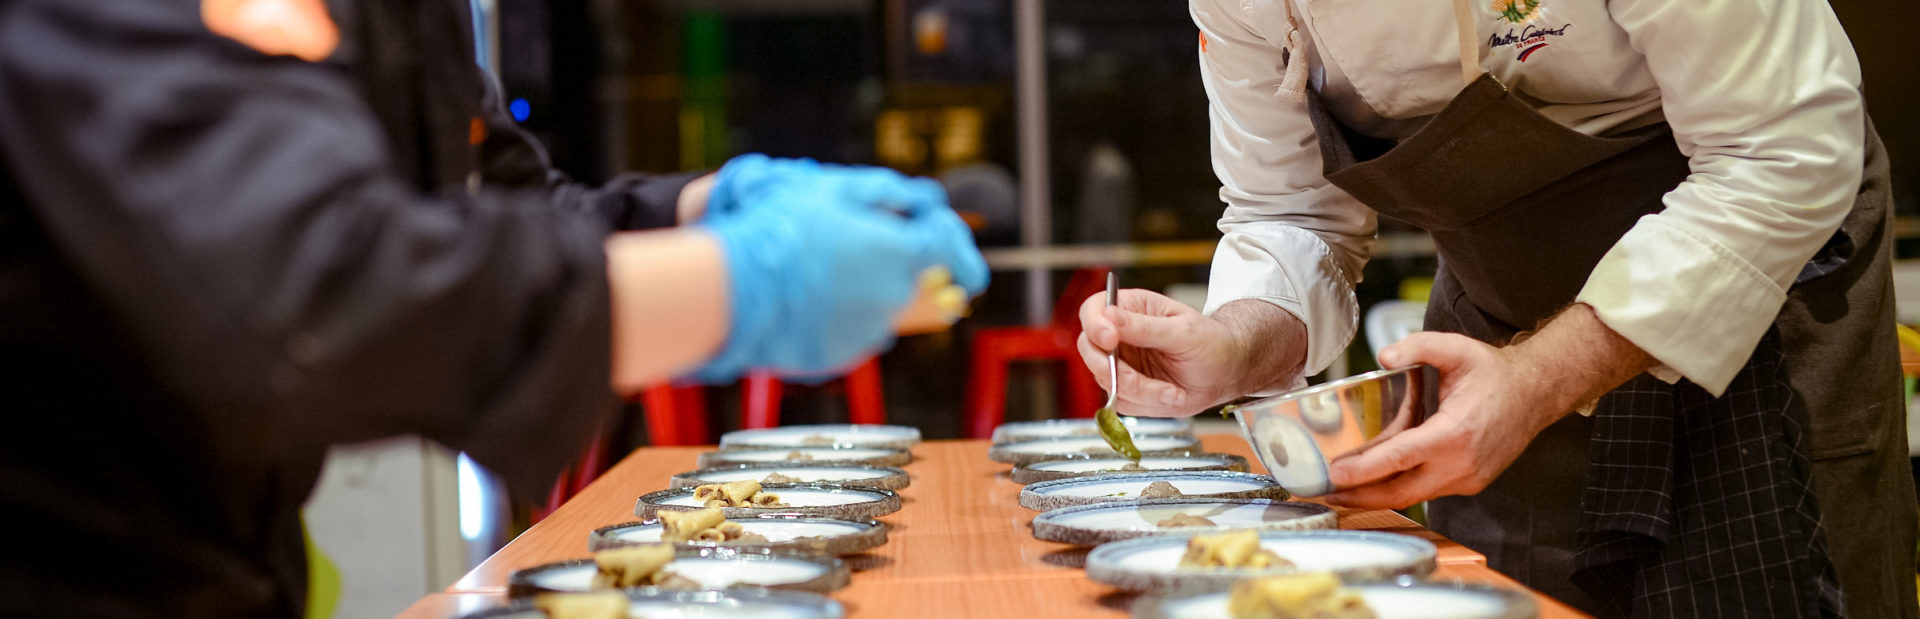 high-end catering and food service solutions AdenEdge